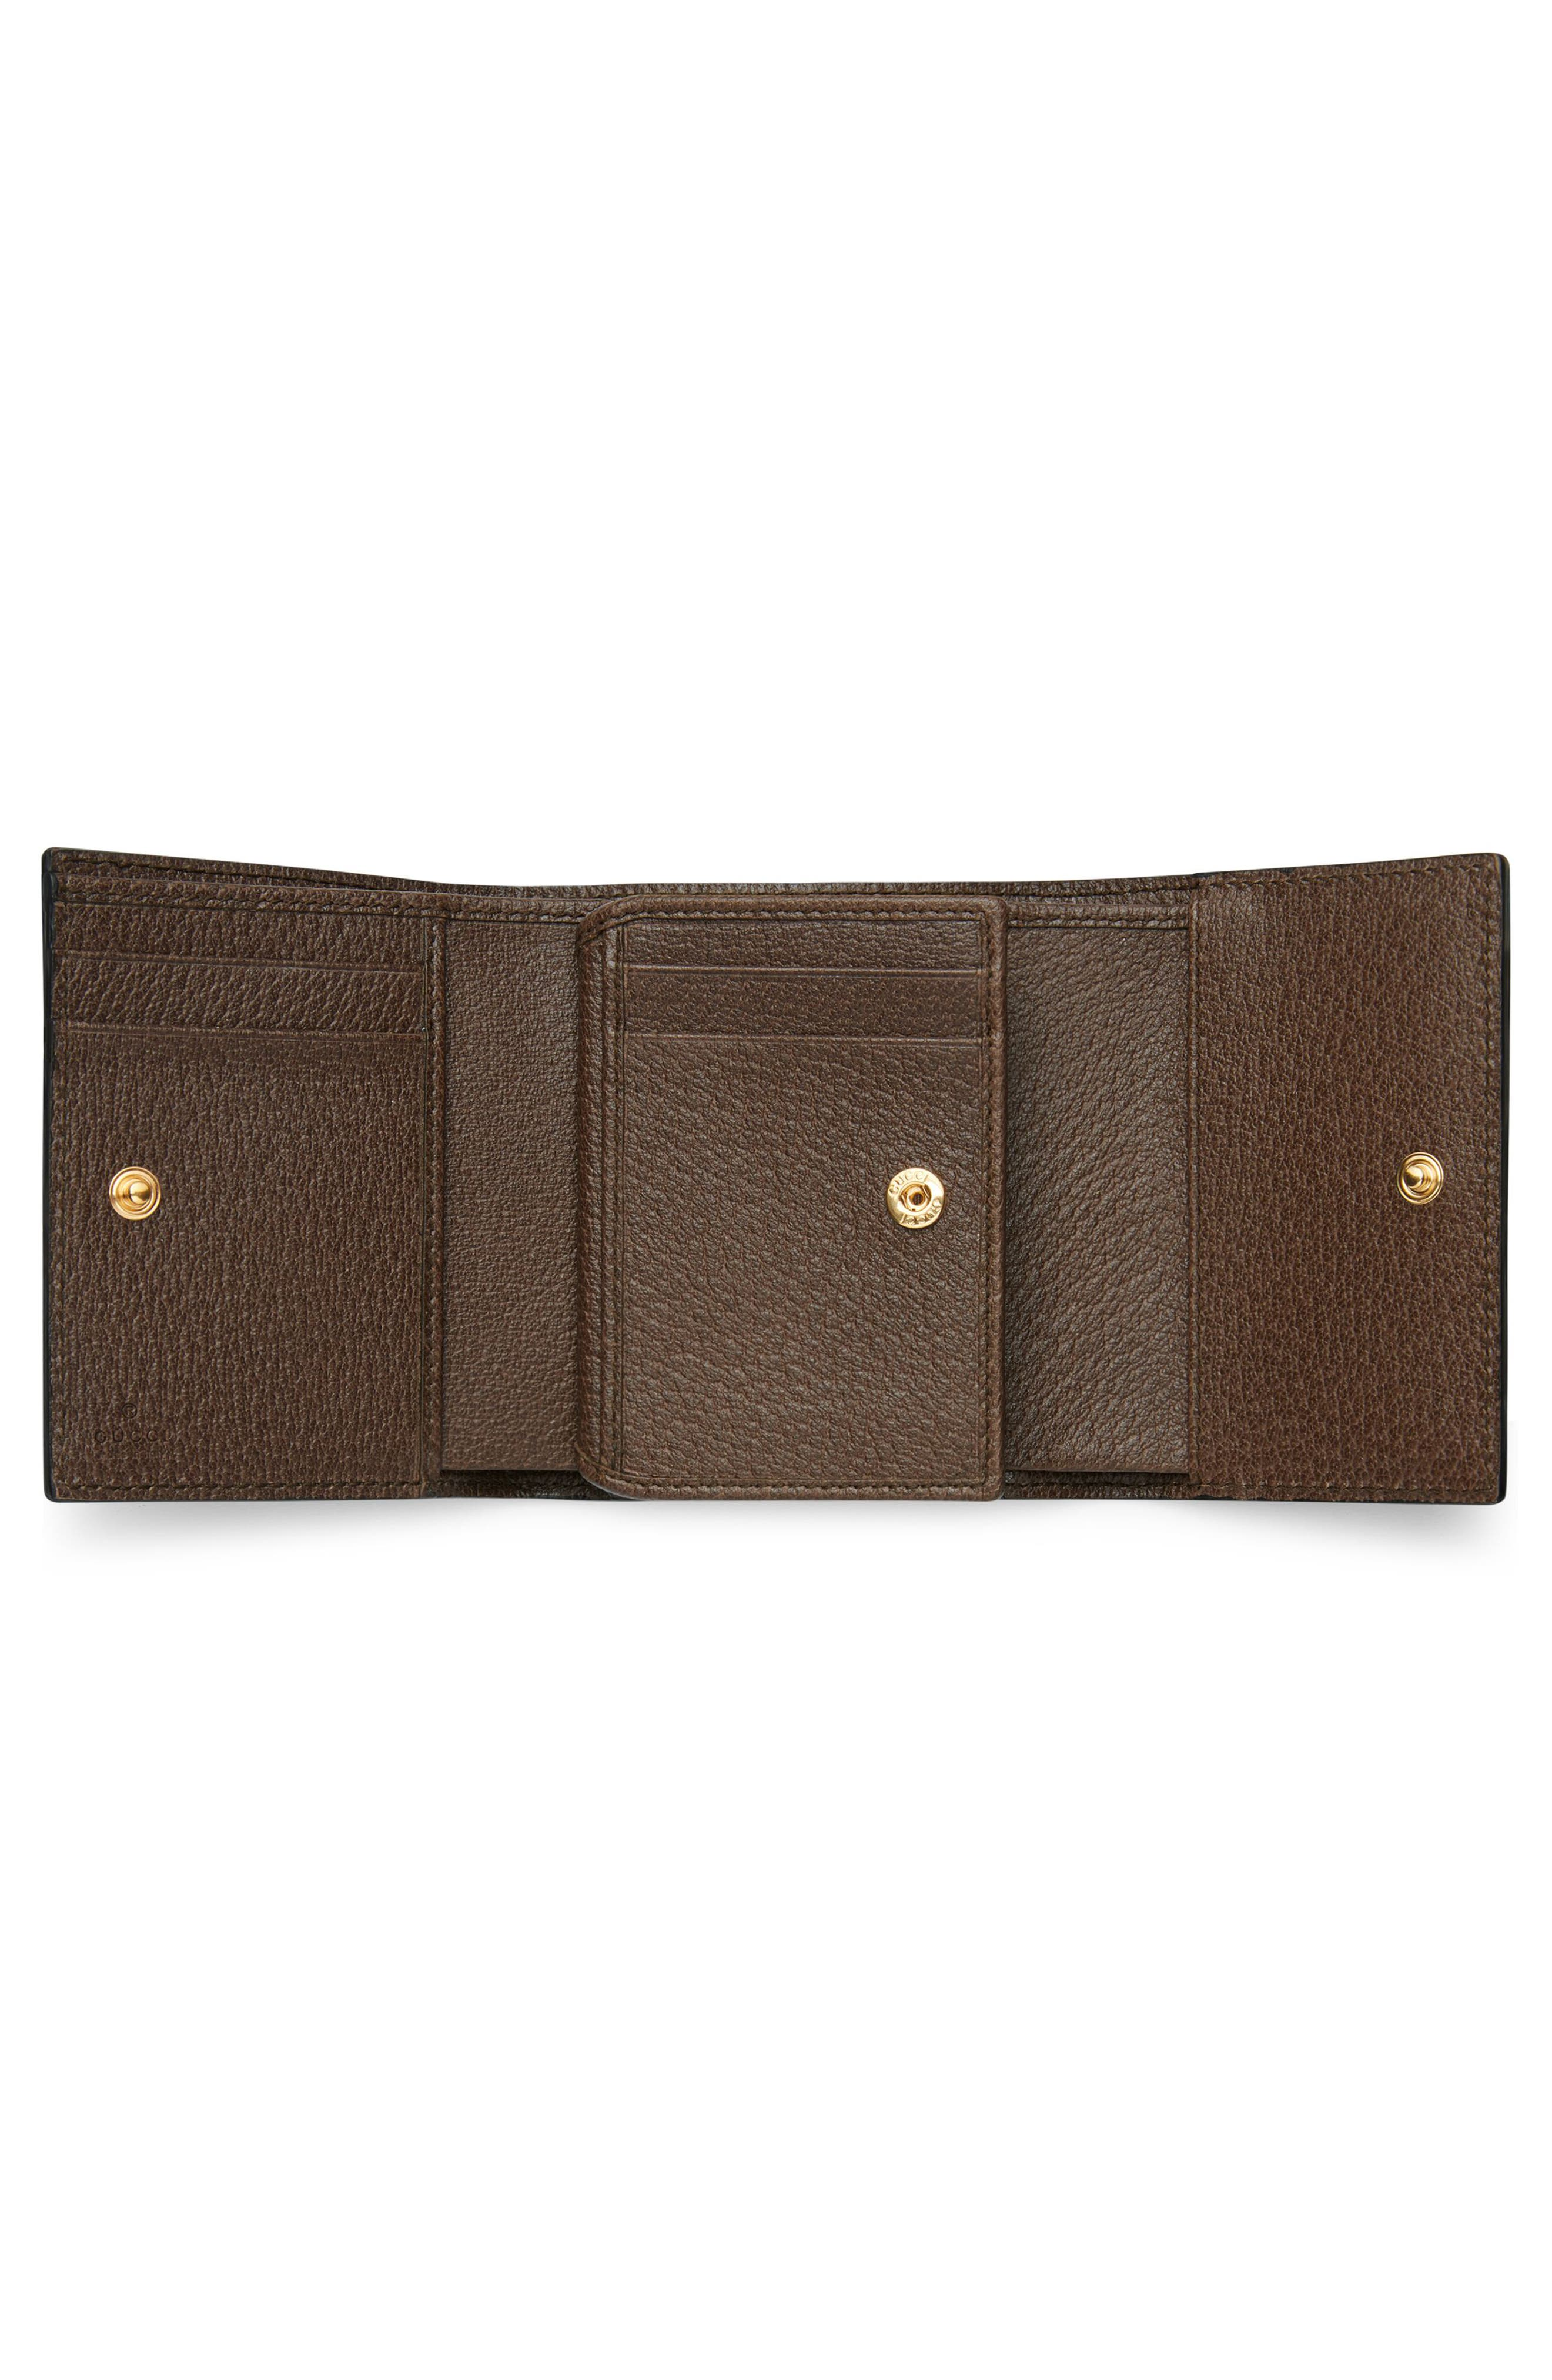 Ophidia GG Supreme French Wallet,                             Alternate thumbnail 4, color,                             BEIGE EBONY/ ACERO/ VERT RED